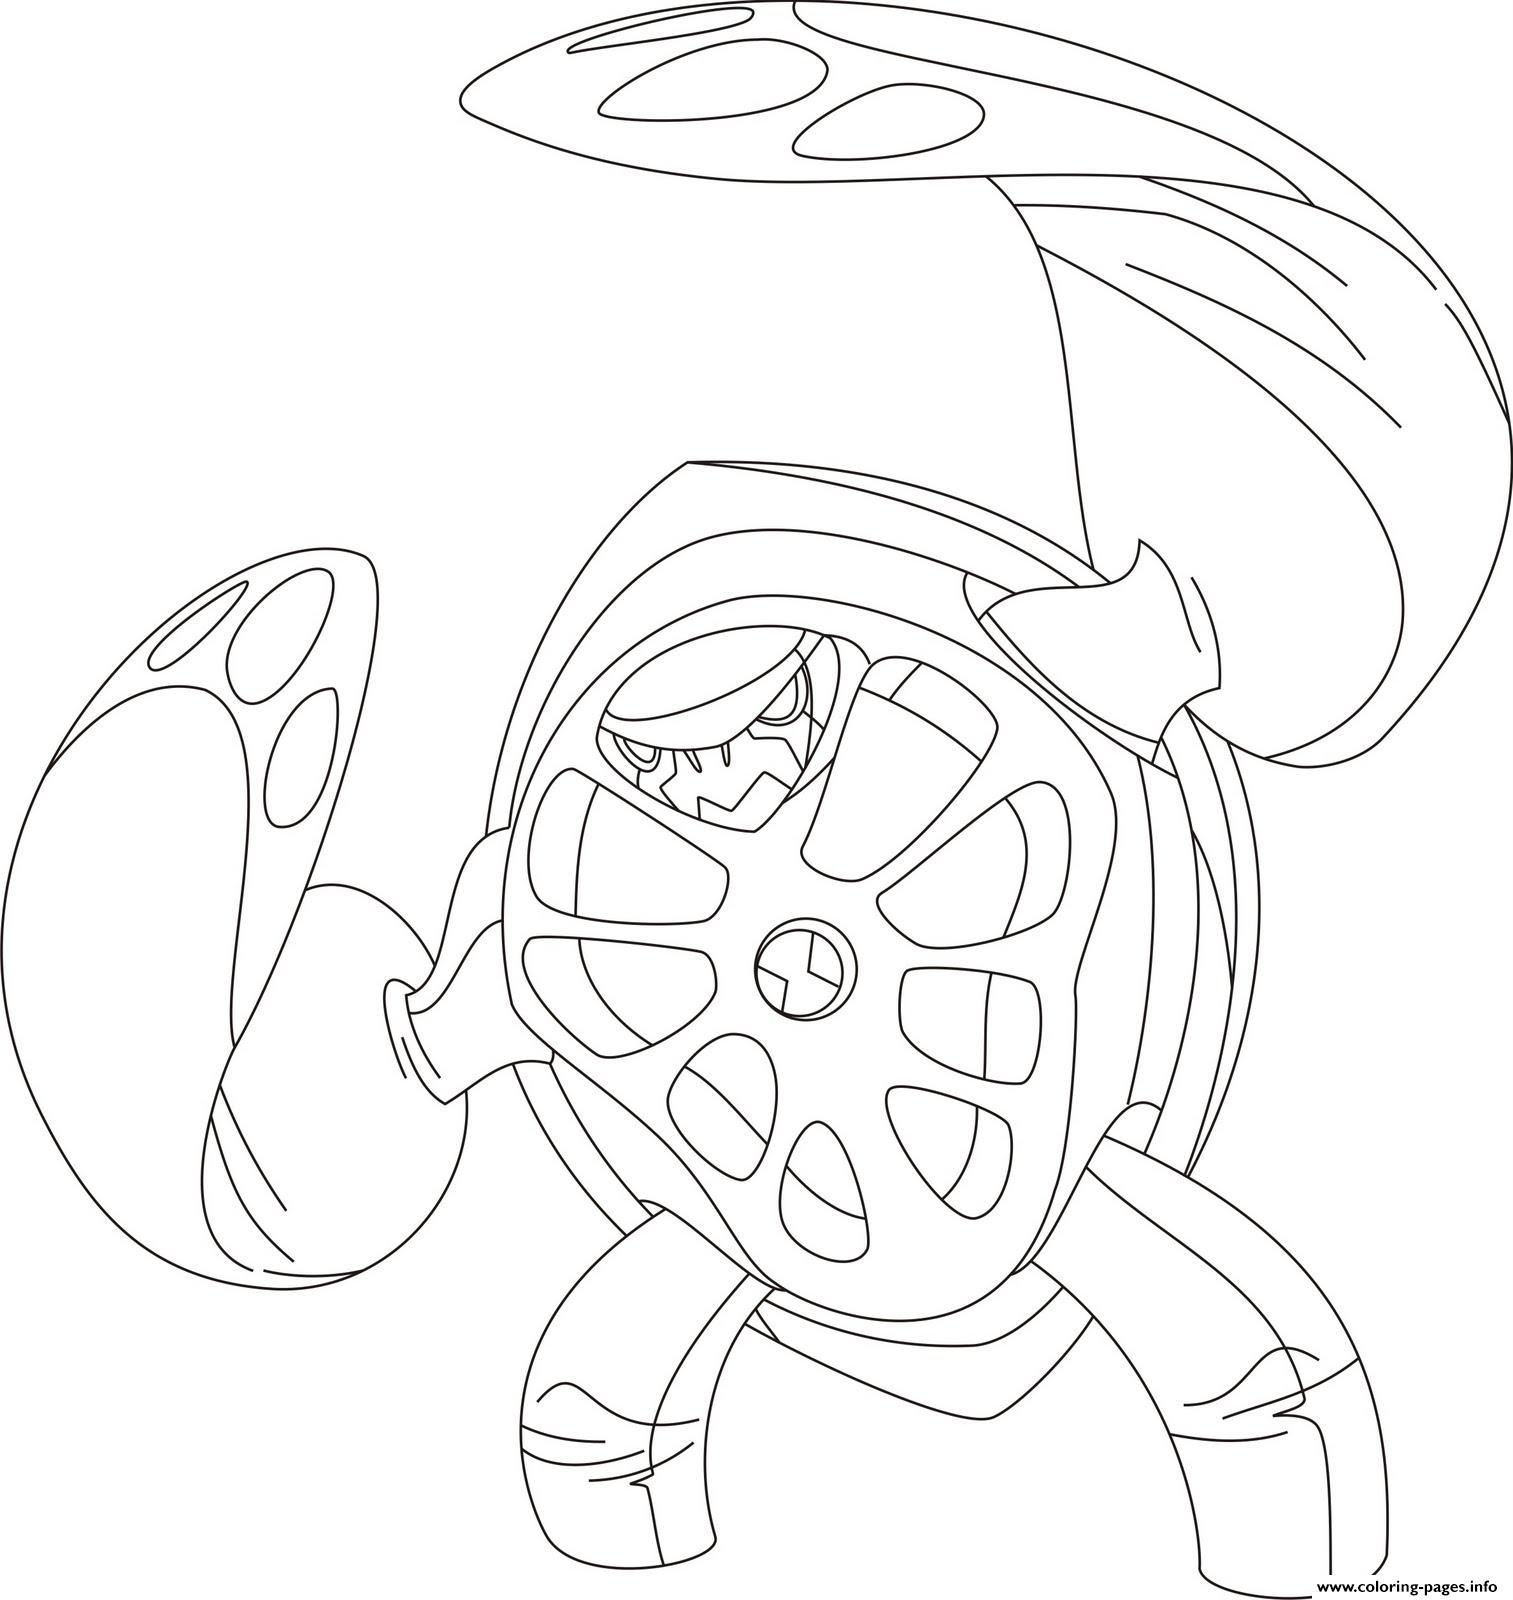 Dessin Ben 10 118 Coloring Pages Print Download